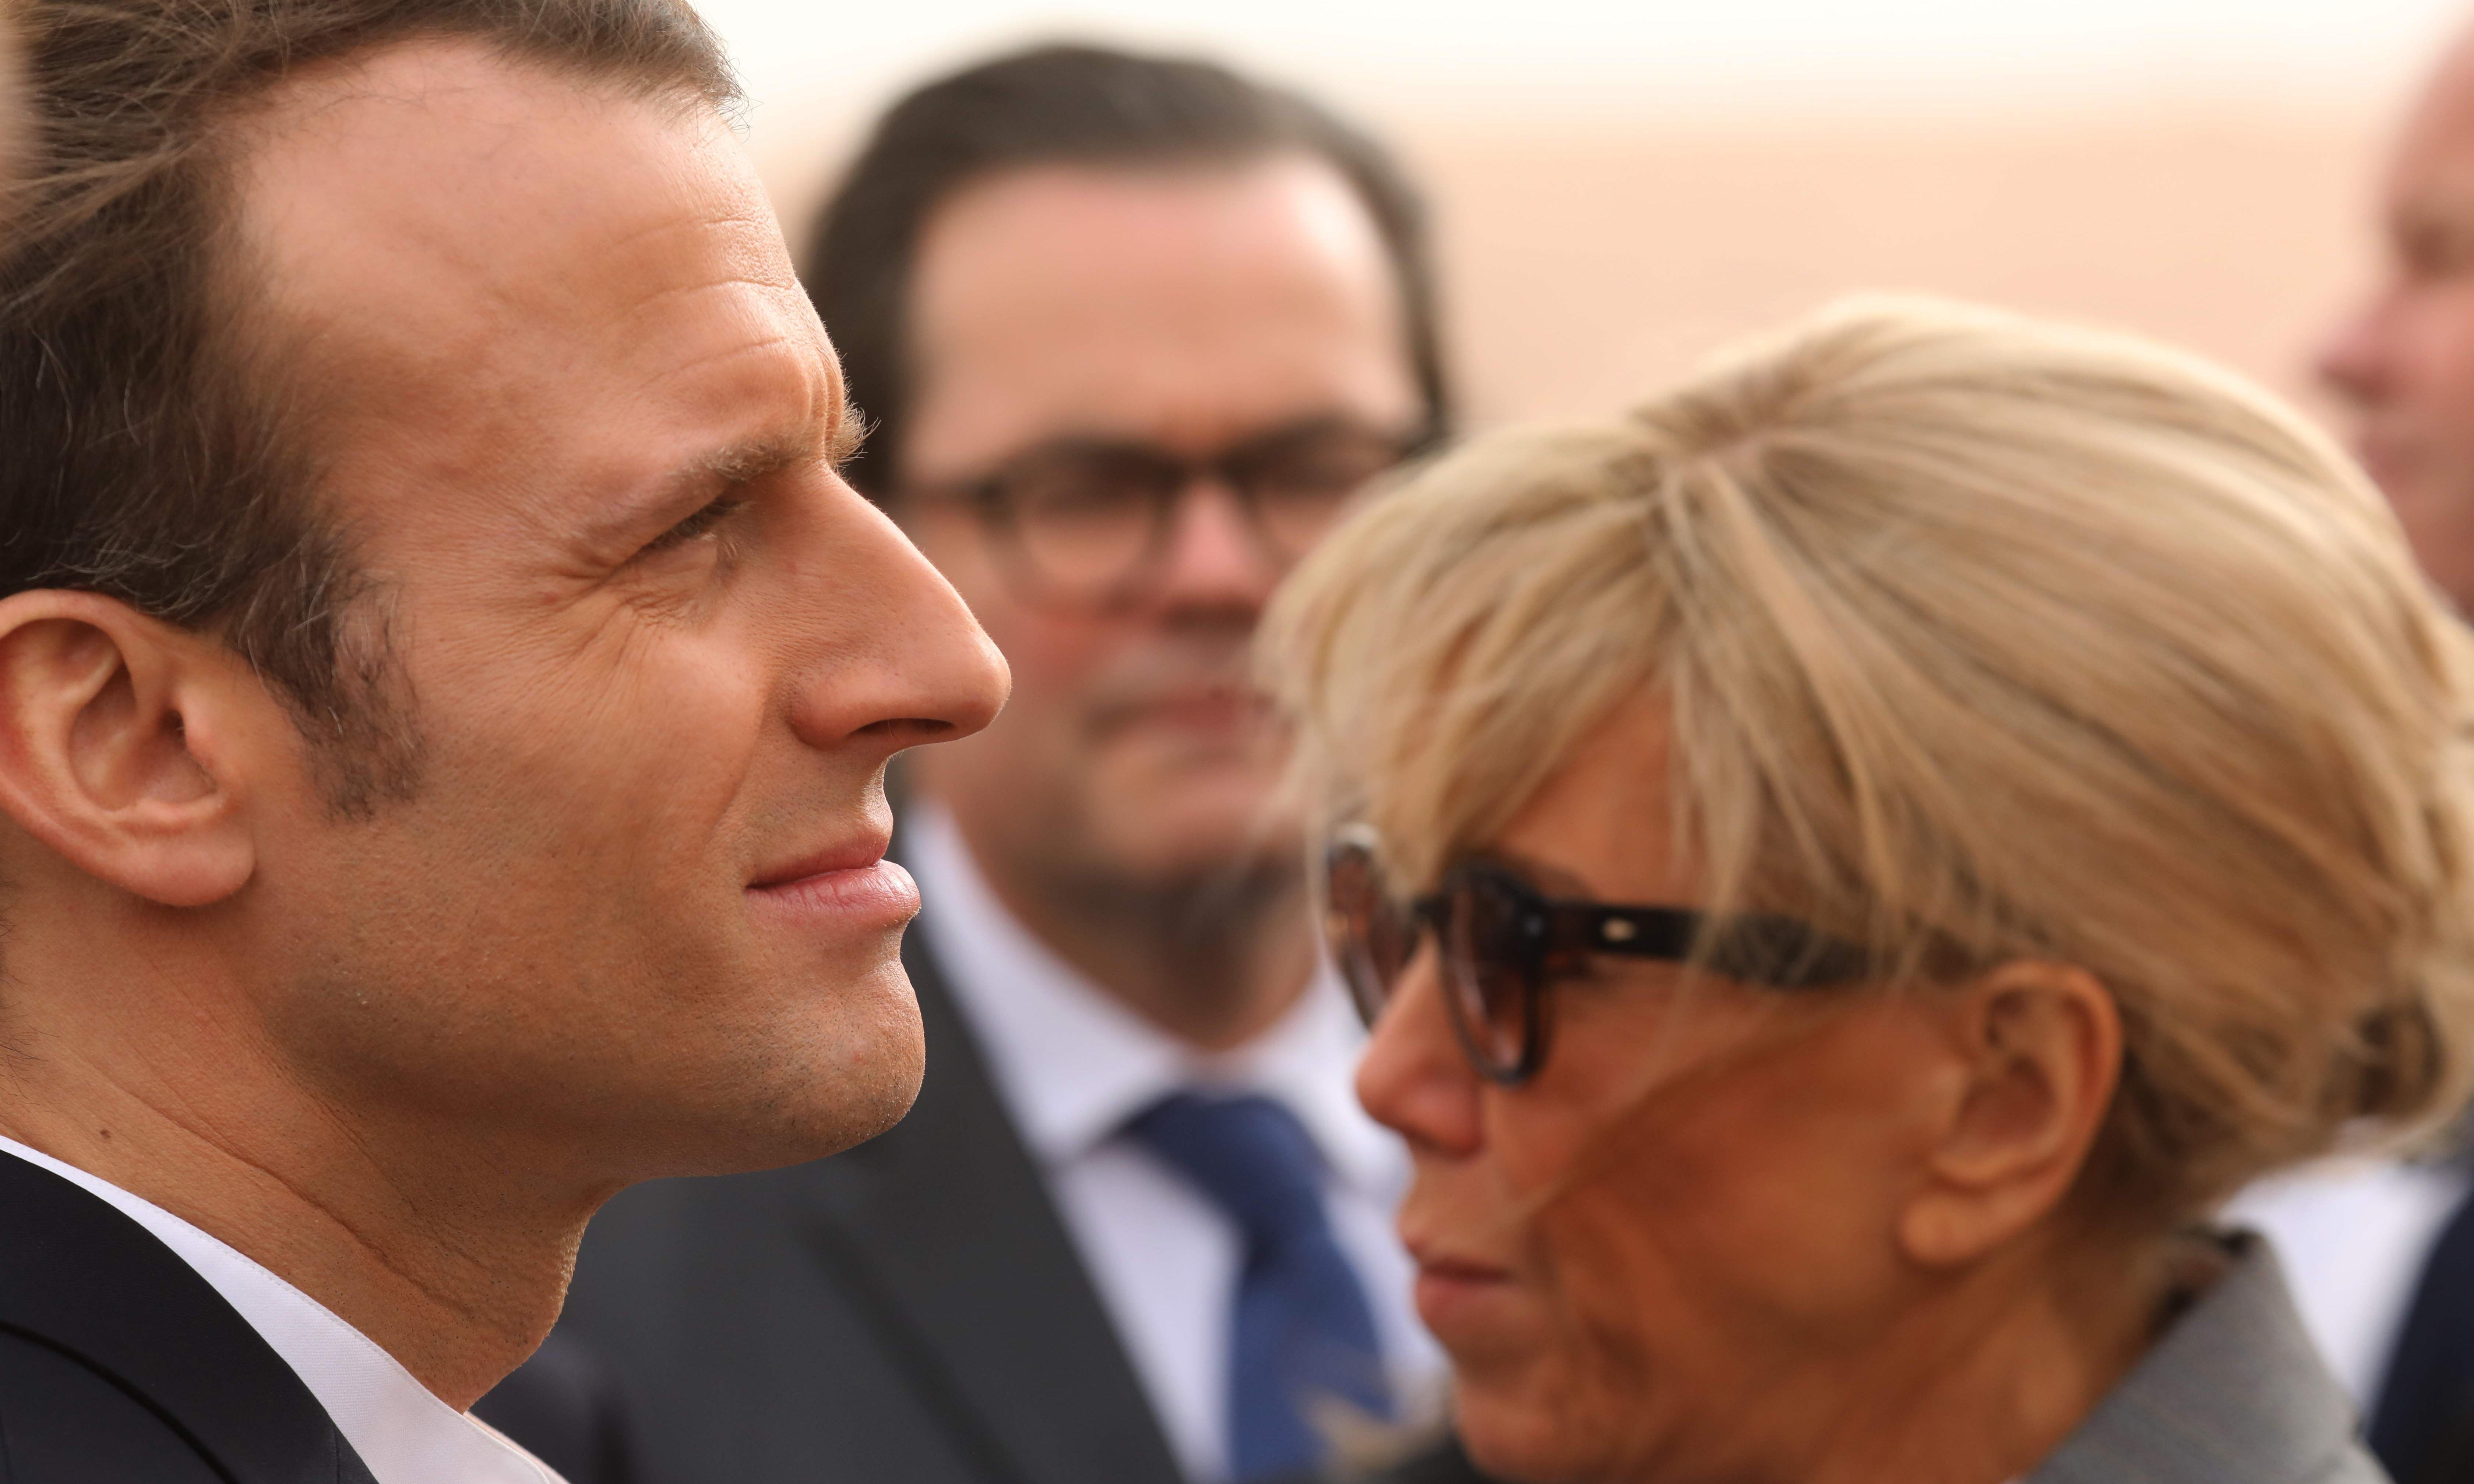 Leave Brigitte Macron alone. We French need to lay off our first ladies